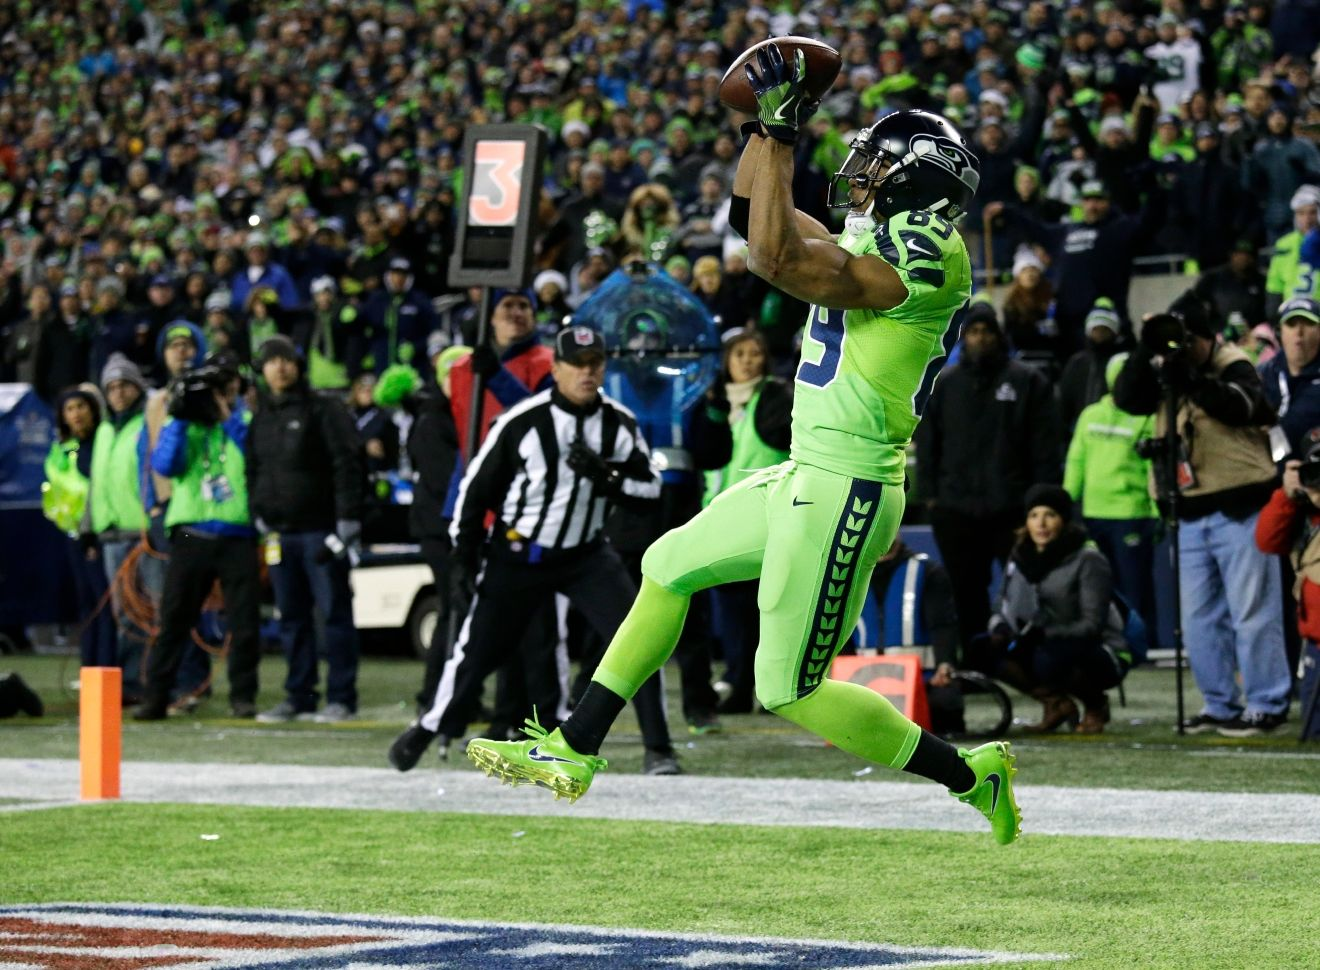 Seattle Seahawks wide receiver Doug Baldwin catches a pass in the end zone for a touchdown against the Los Angeles Rams in the second half of an NFL football game, Thursday, Dec. 15, 2016, in Seattle. (AP Photo/Elaine Thompson)